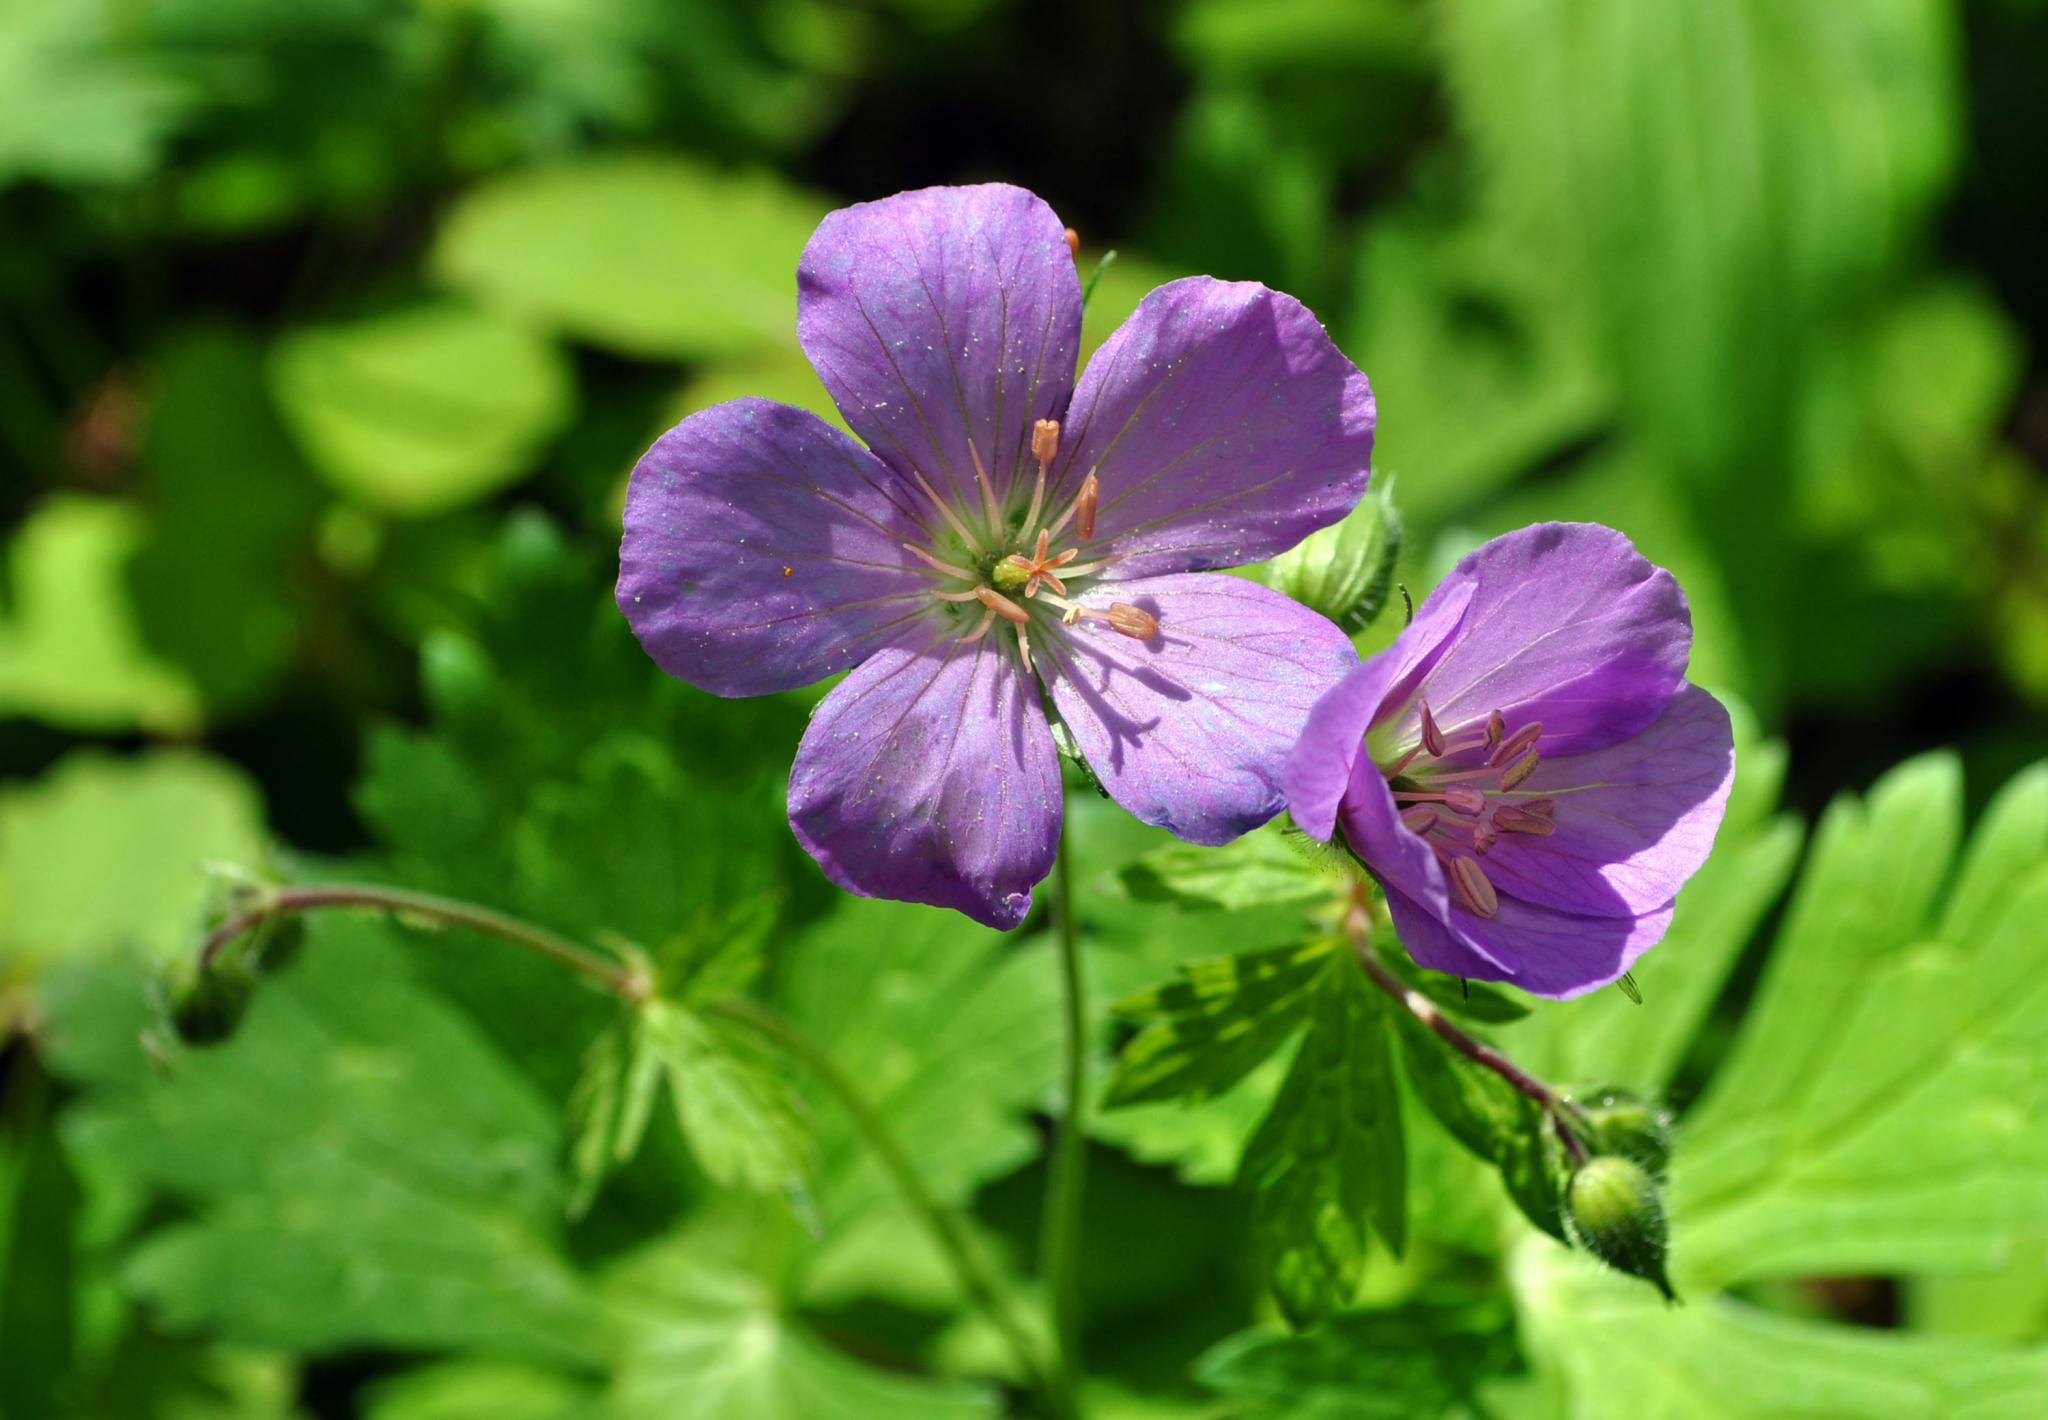 Wild Geranium, a New York City native plant